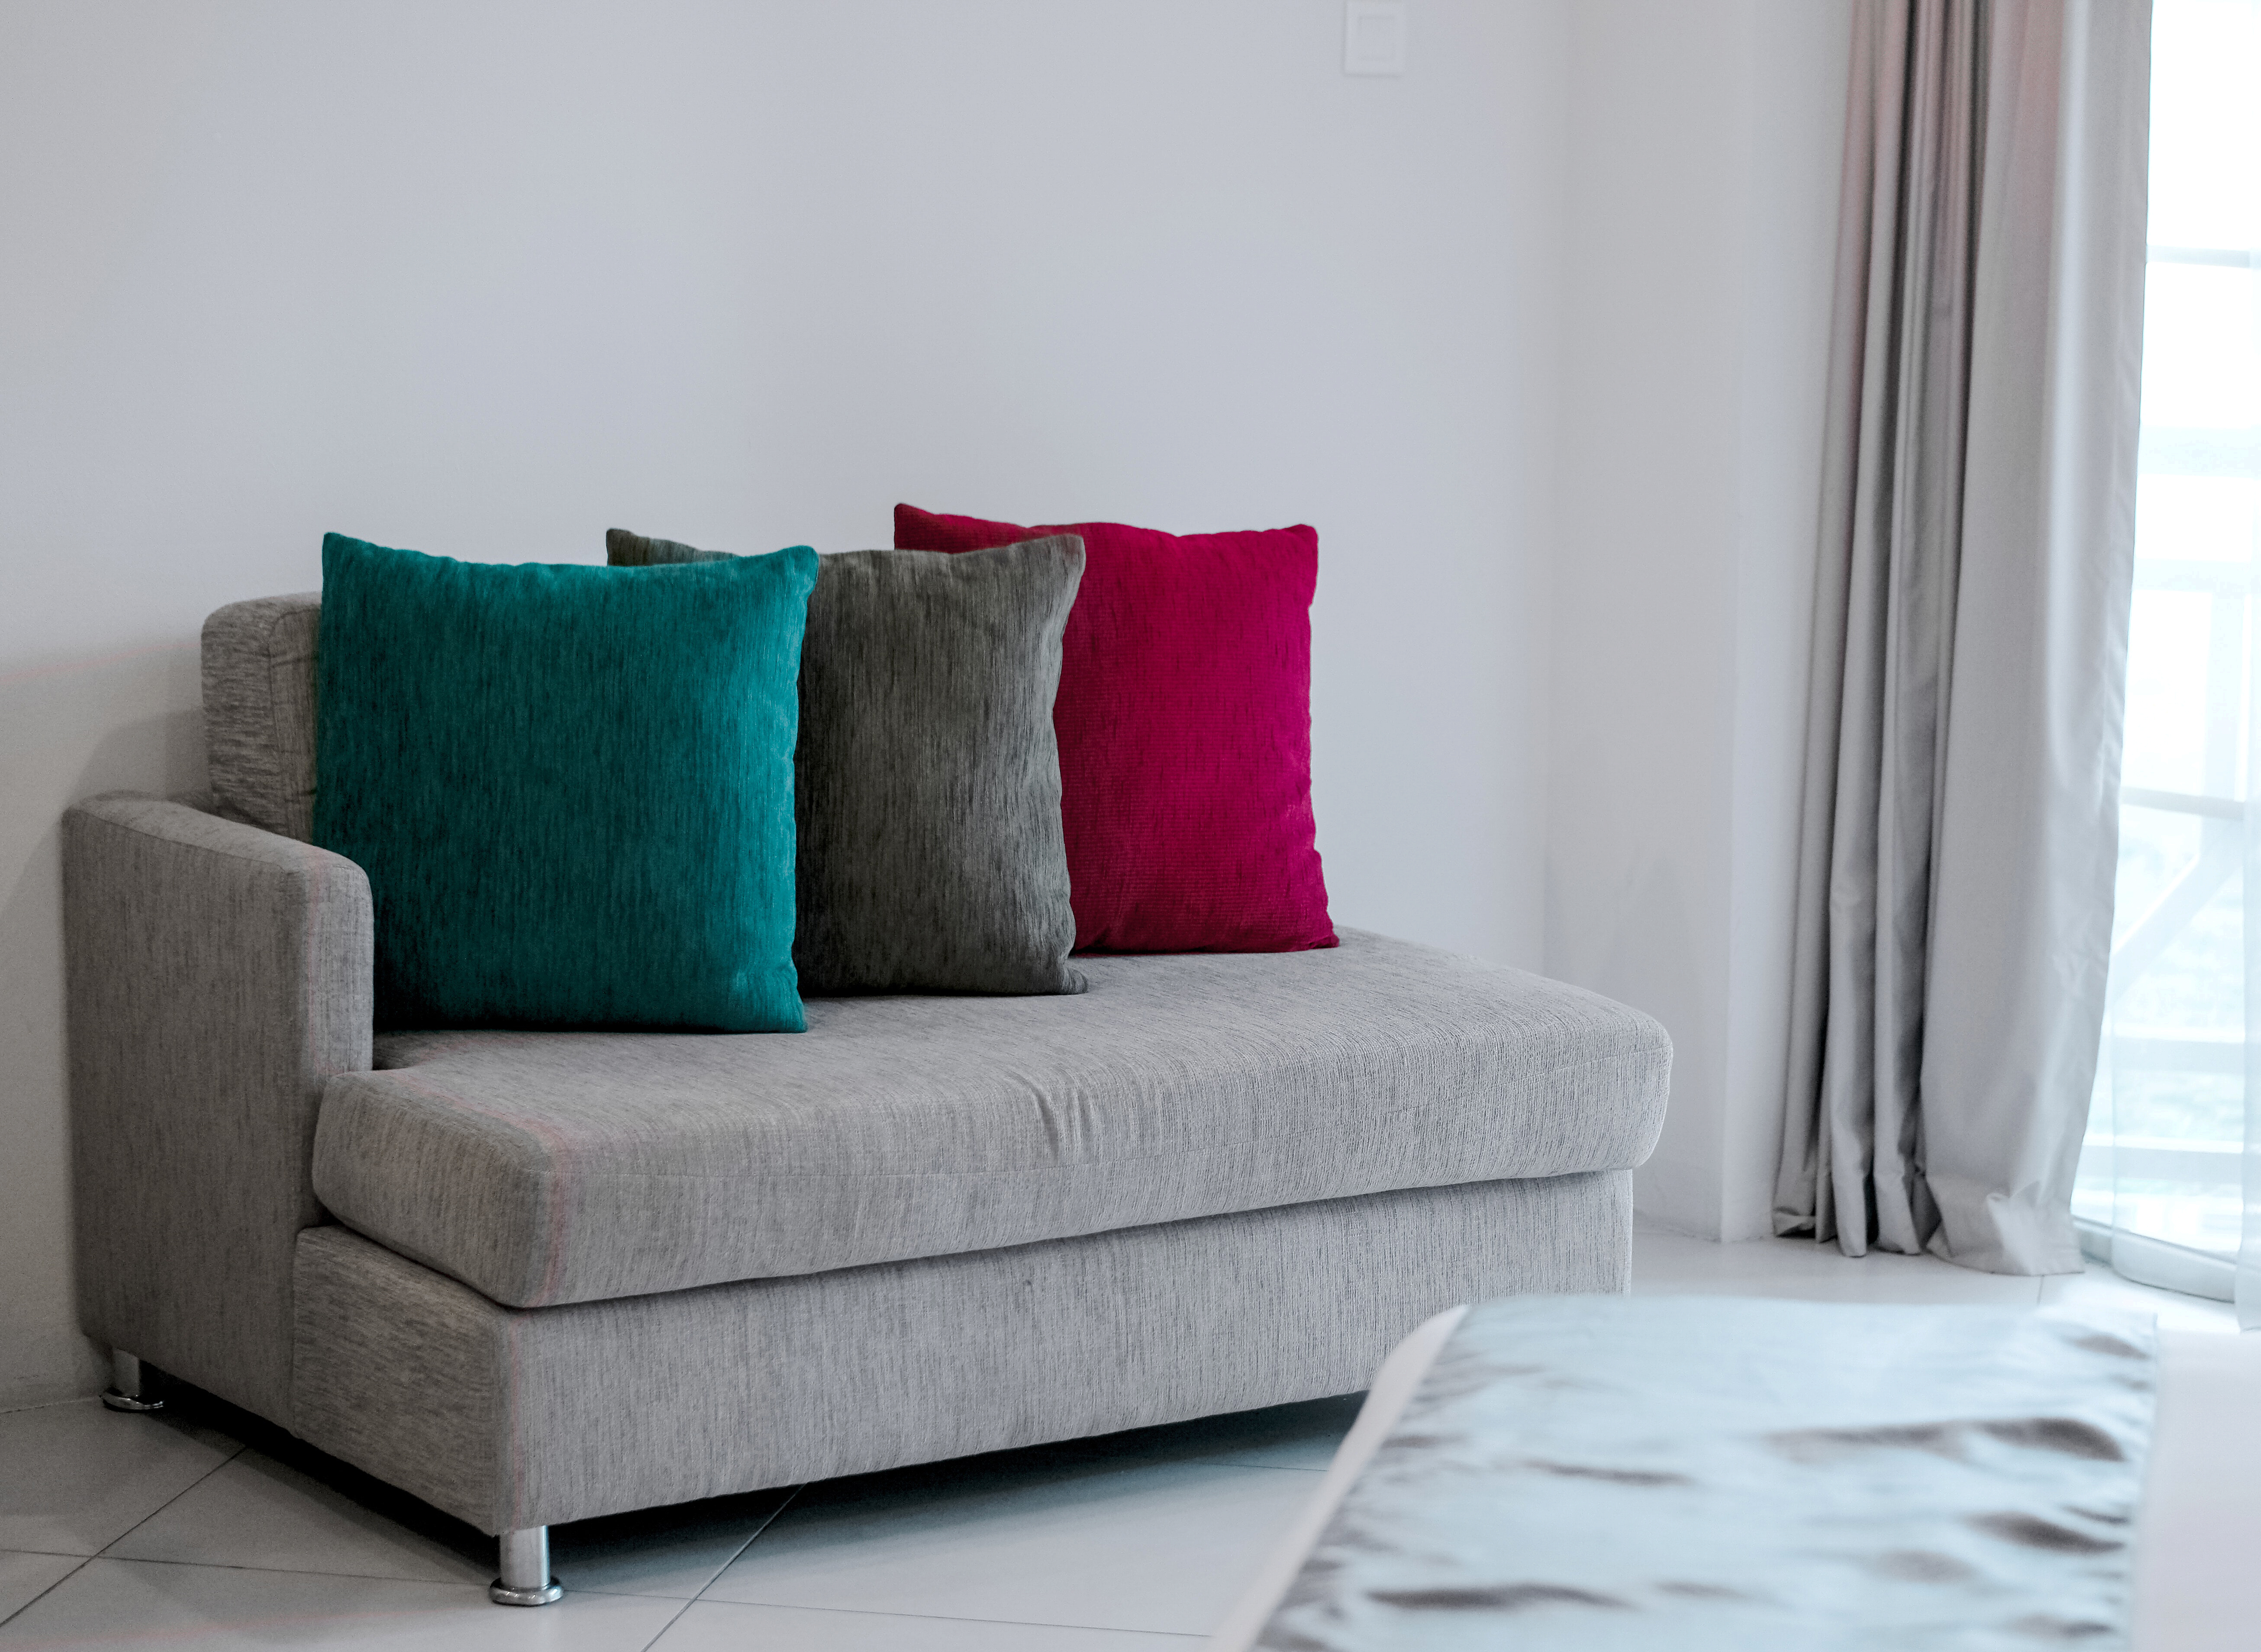 You can keep your linen sofa beds clean using different products for certain types of stains.